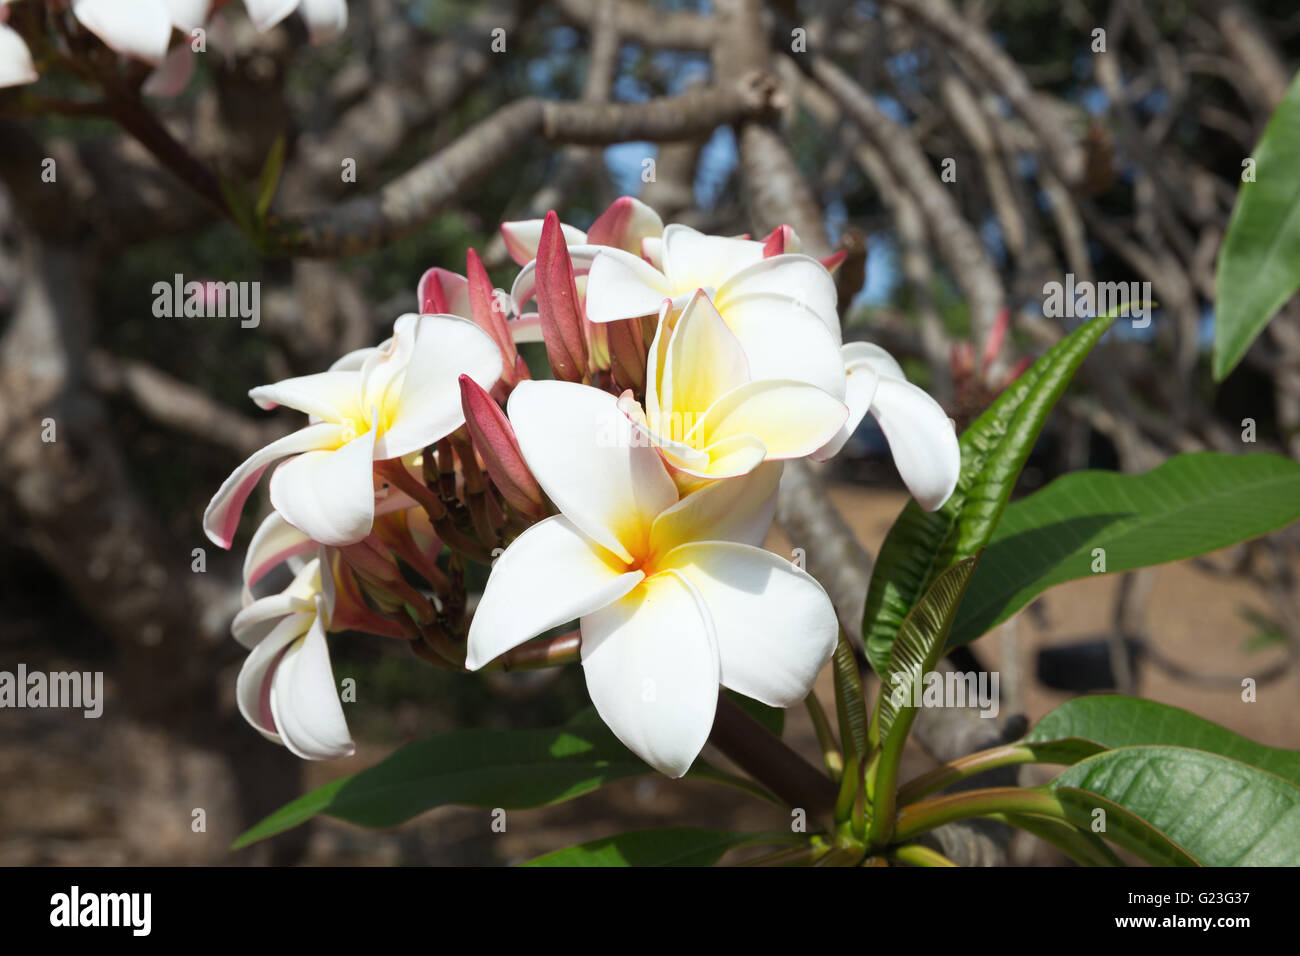 Flowers Of The Plumeria Rubra In The Koko Crater Botanical Garden